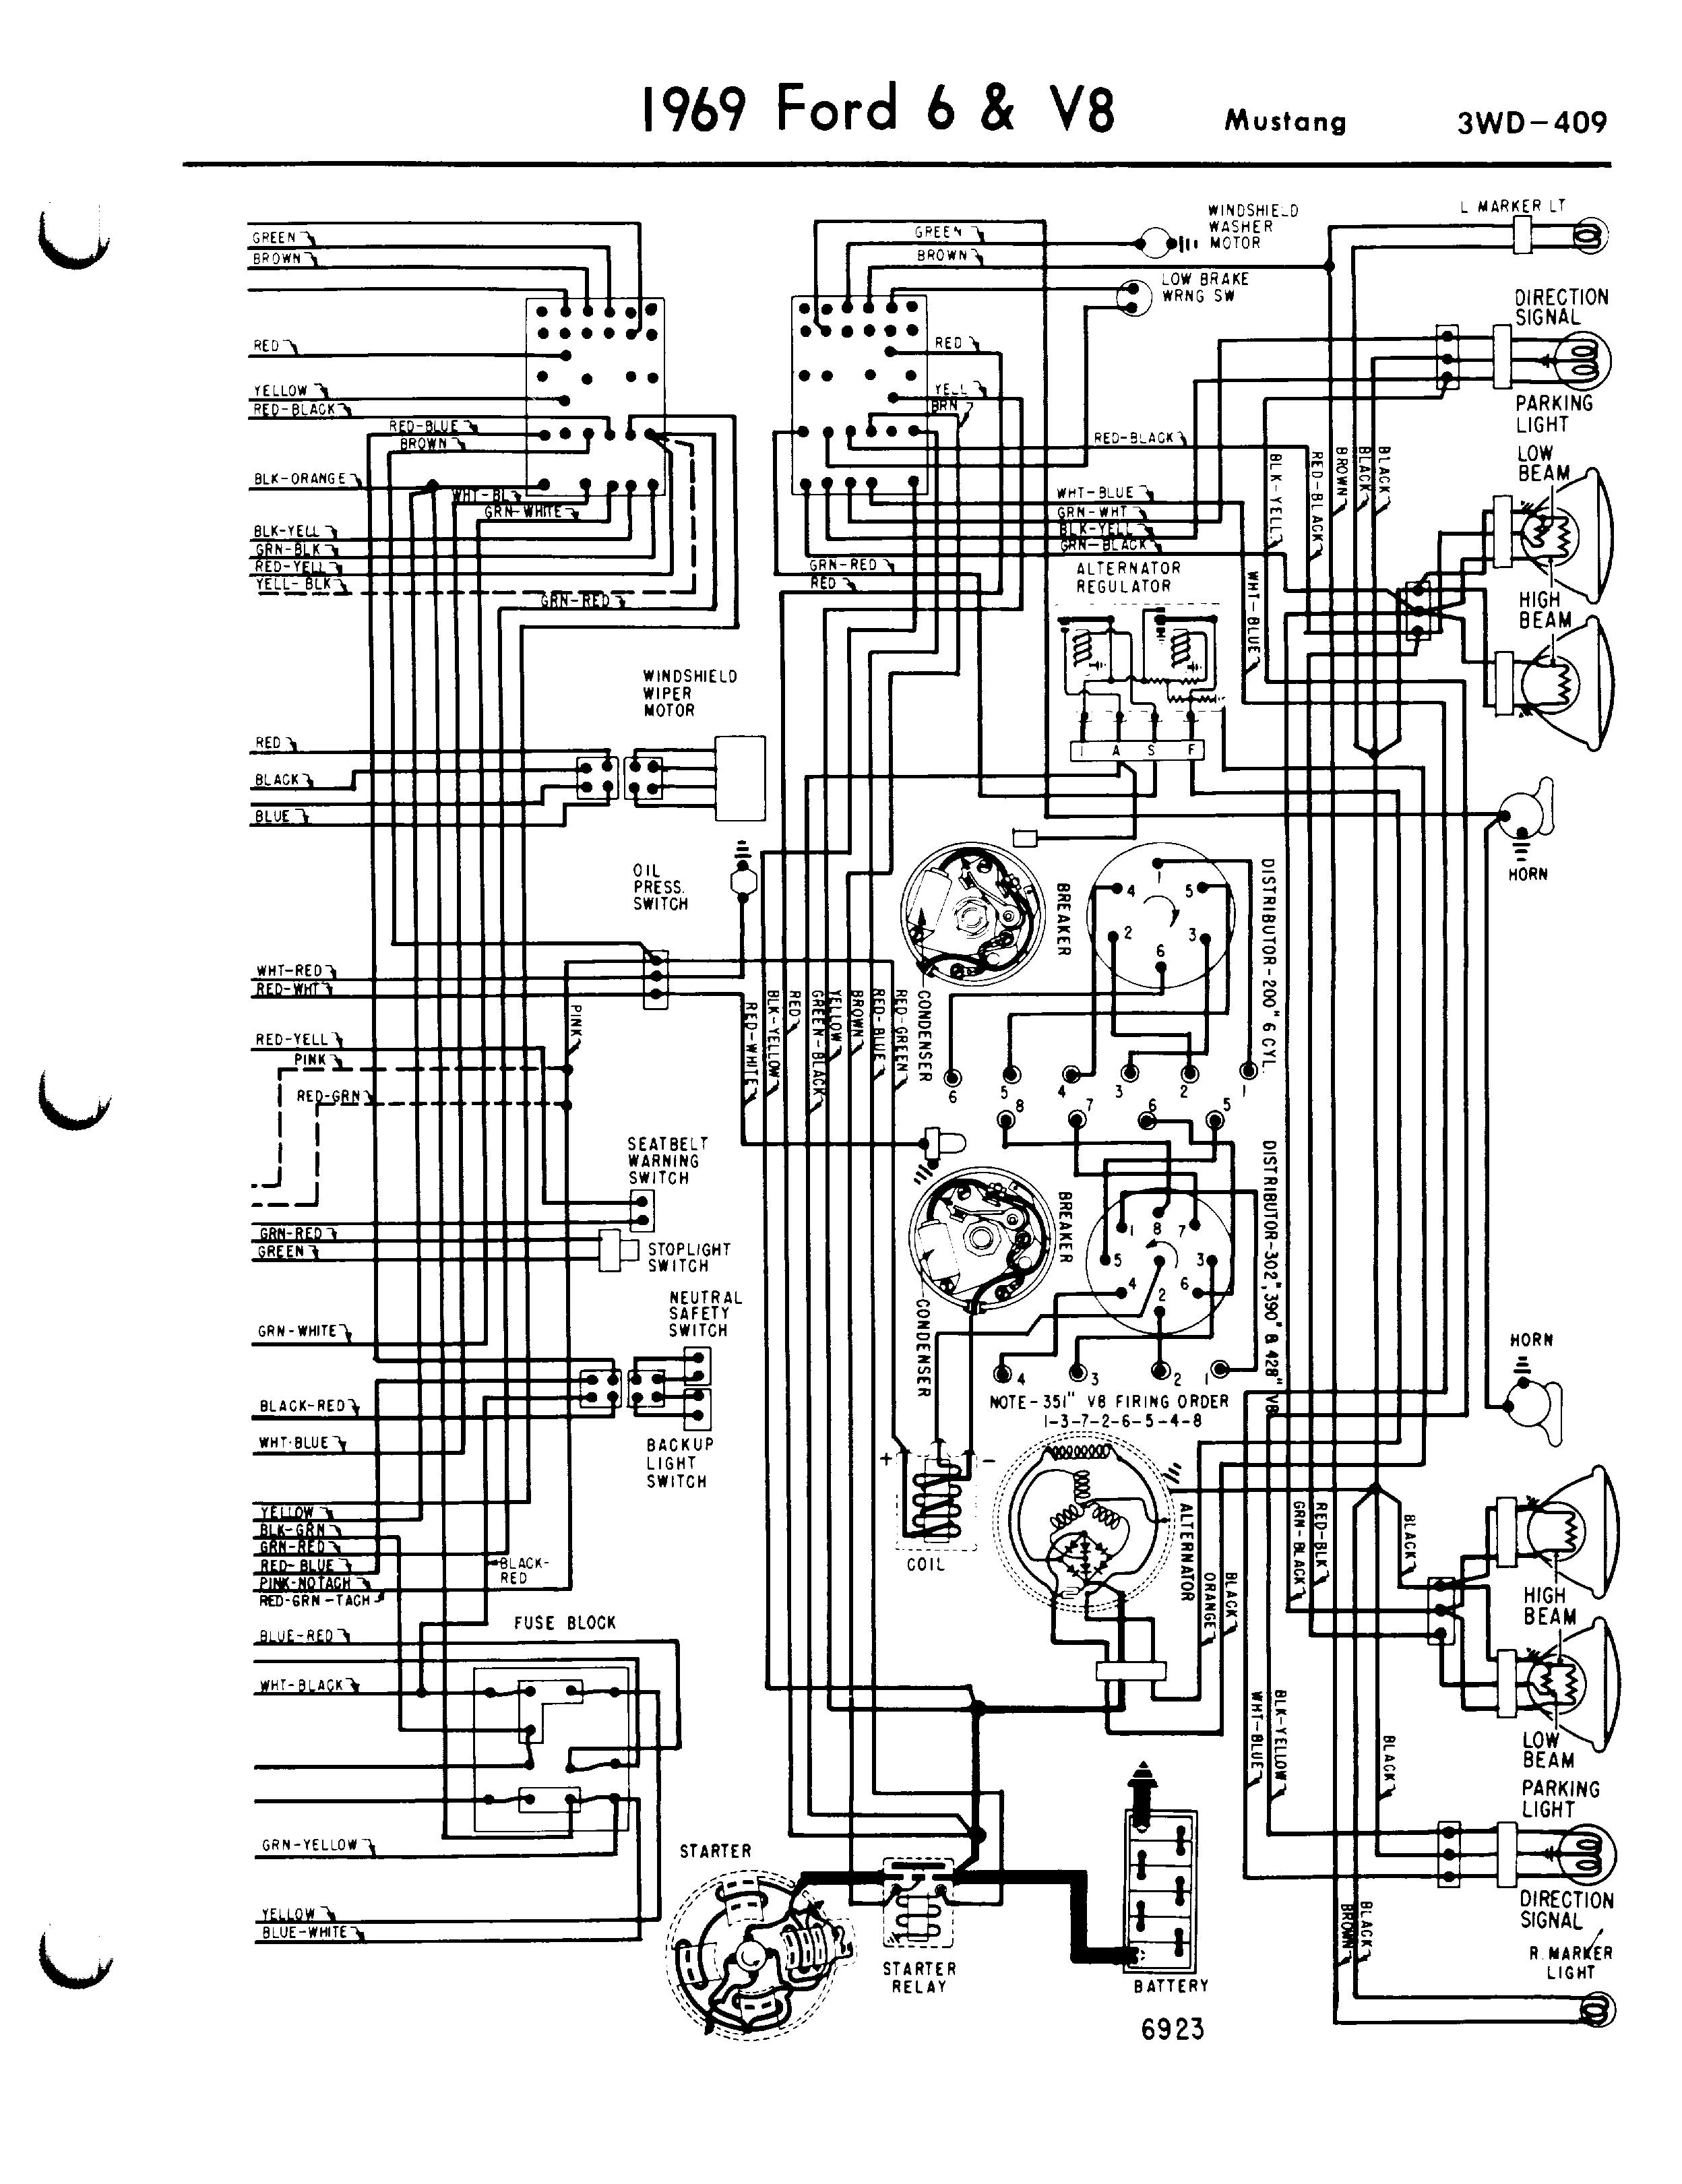 Mustangwiring Diagram on 1965 Ford F100 Wiring Diagram